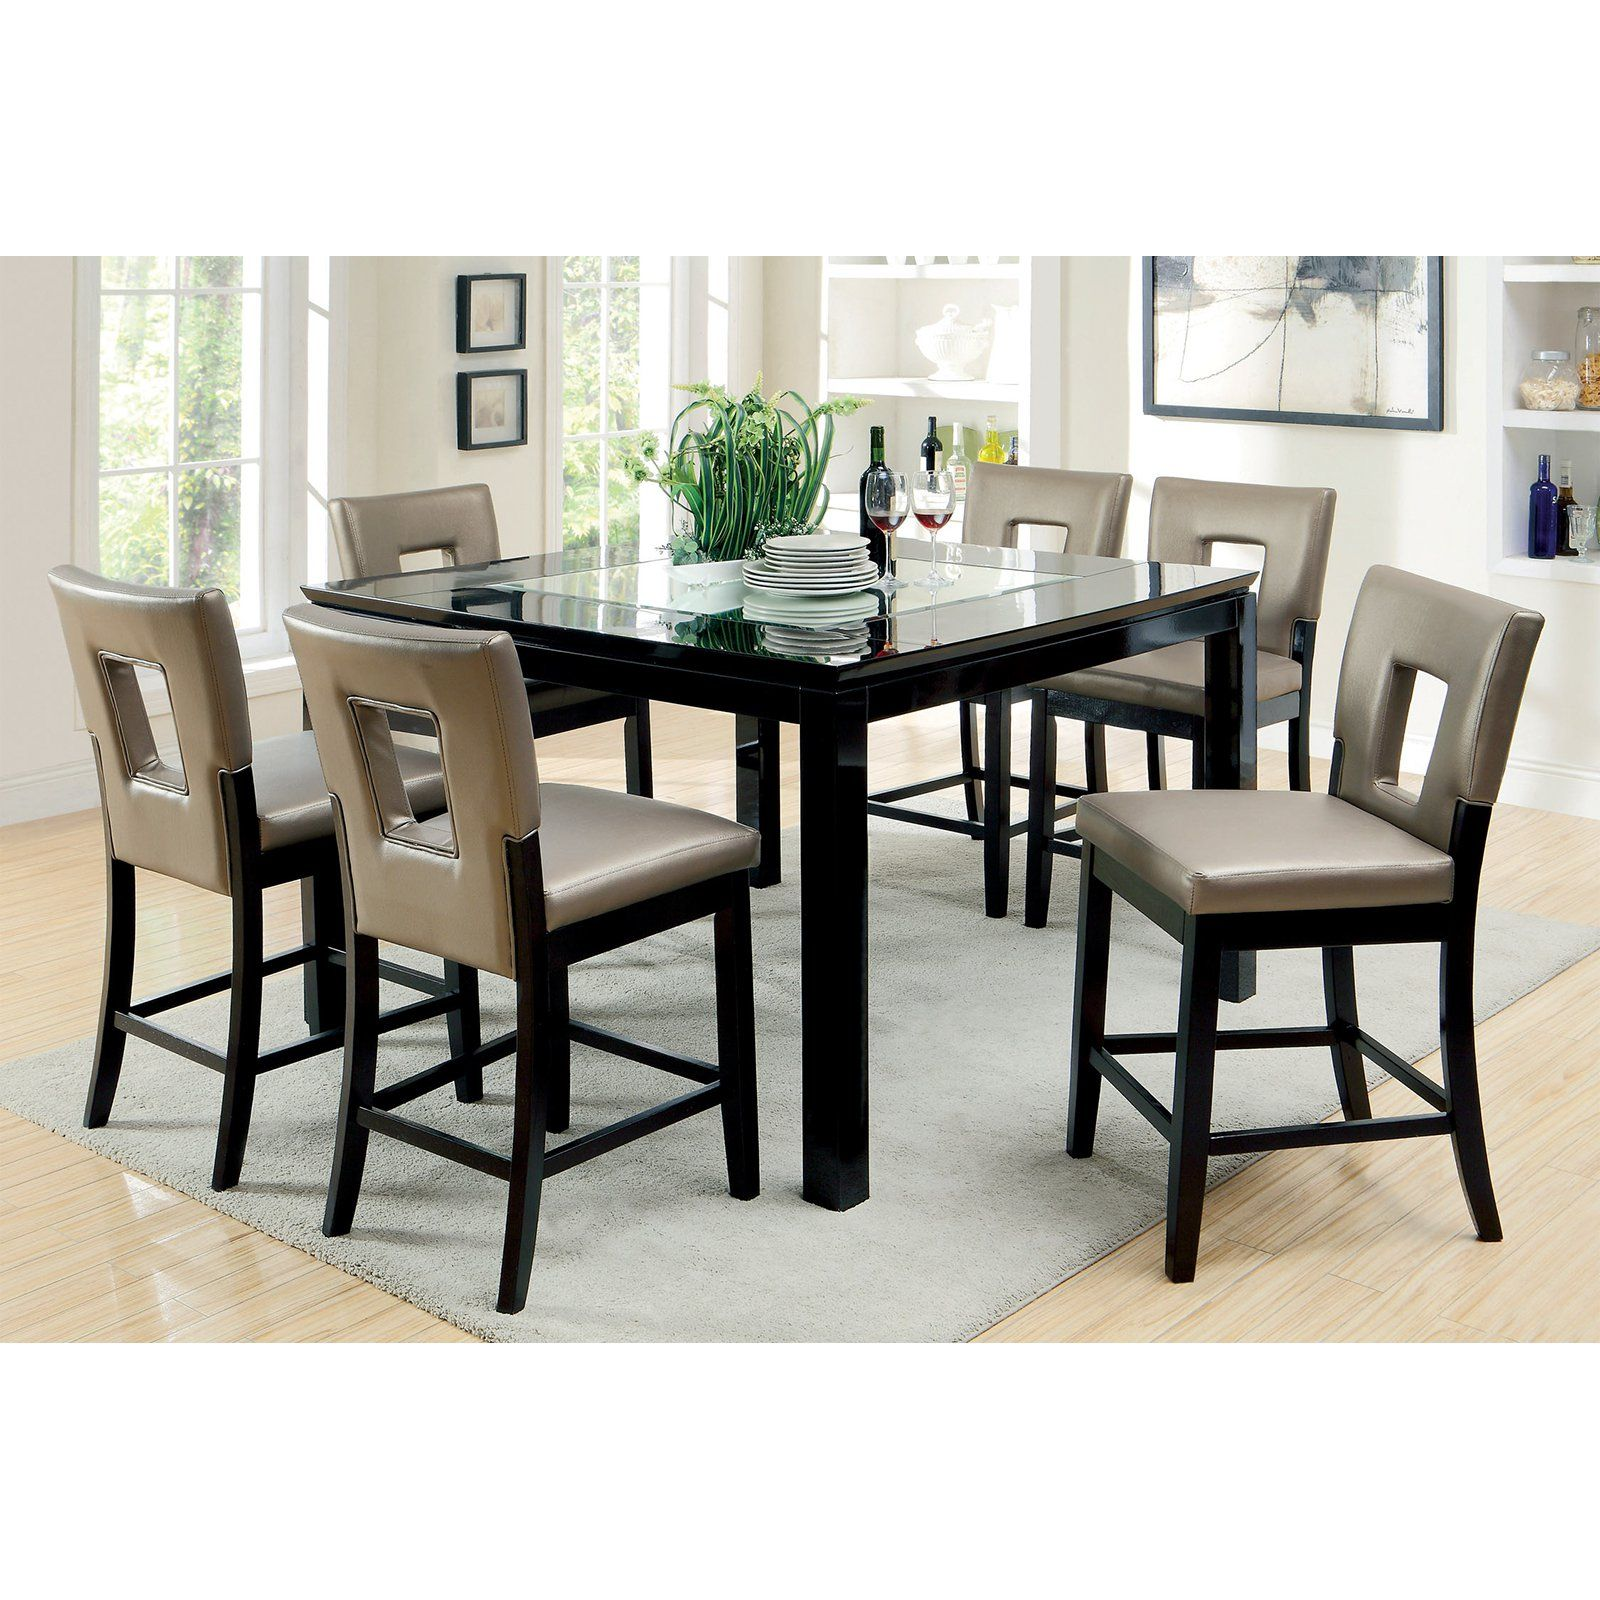 New Counter Height Bistro Tables